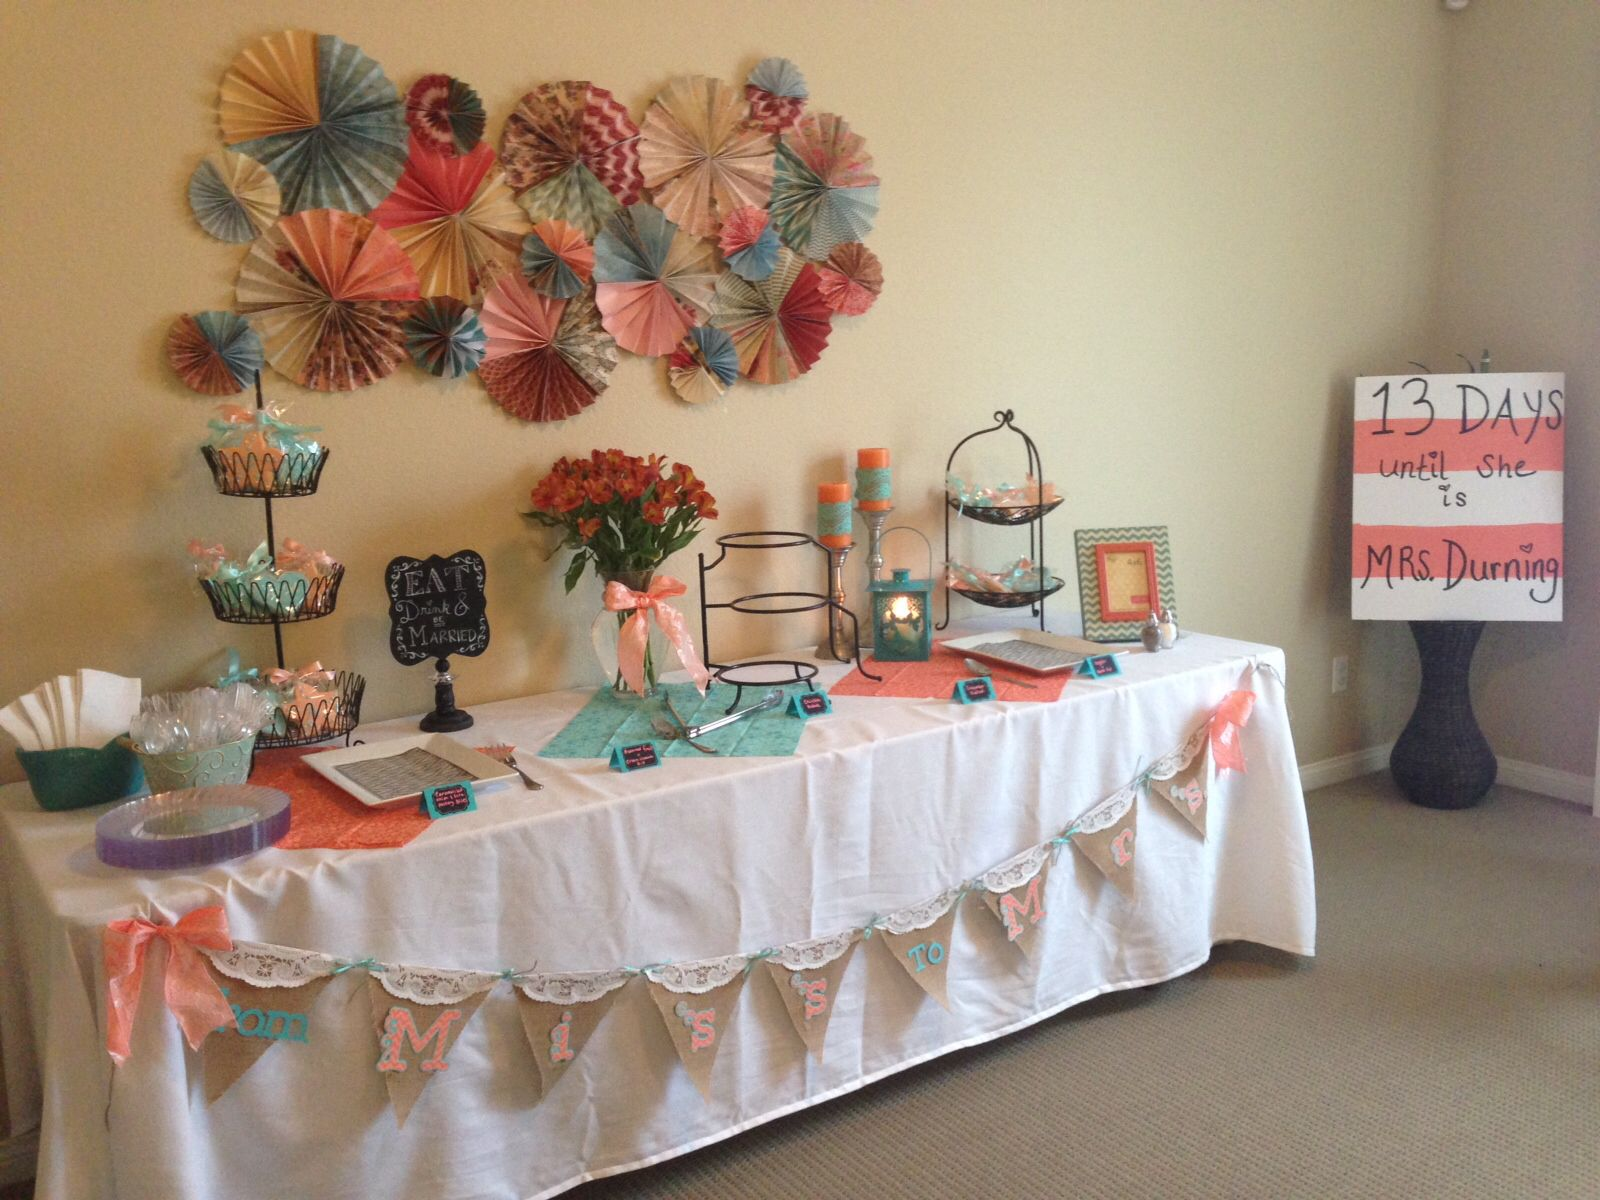 Pinterest Crafts Wedding: Pinterest Bridal Shower Pictures To Pin On Pinterest